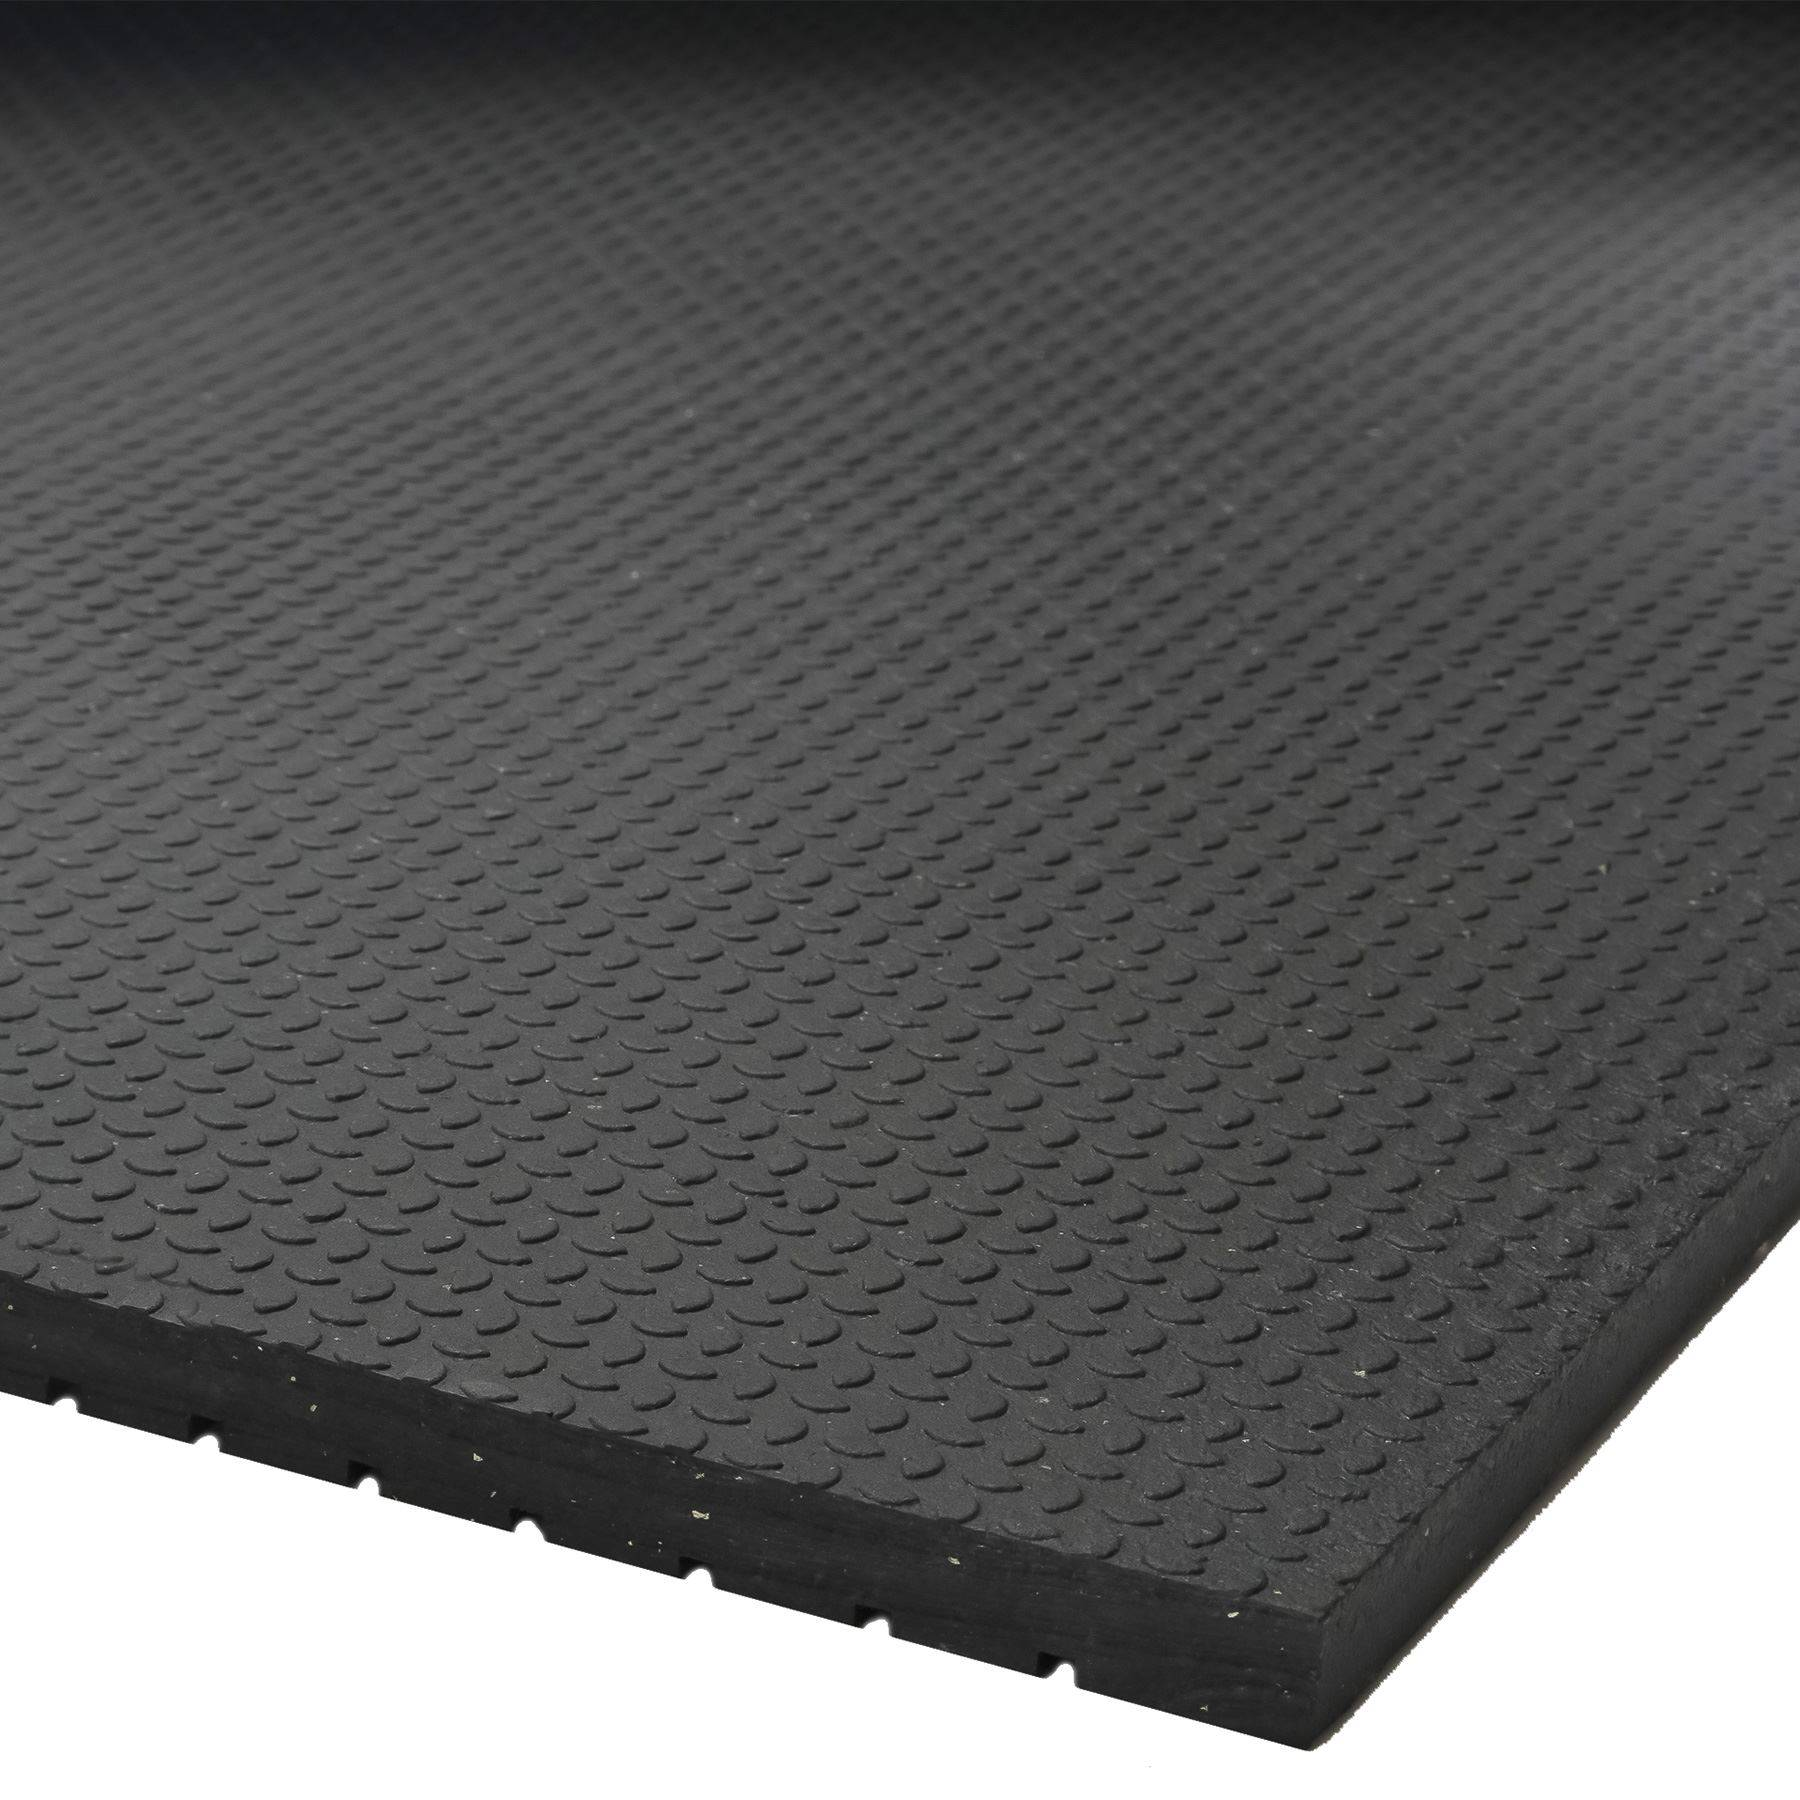 Thick Rubber Mat Schneiders Saddlery